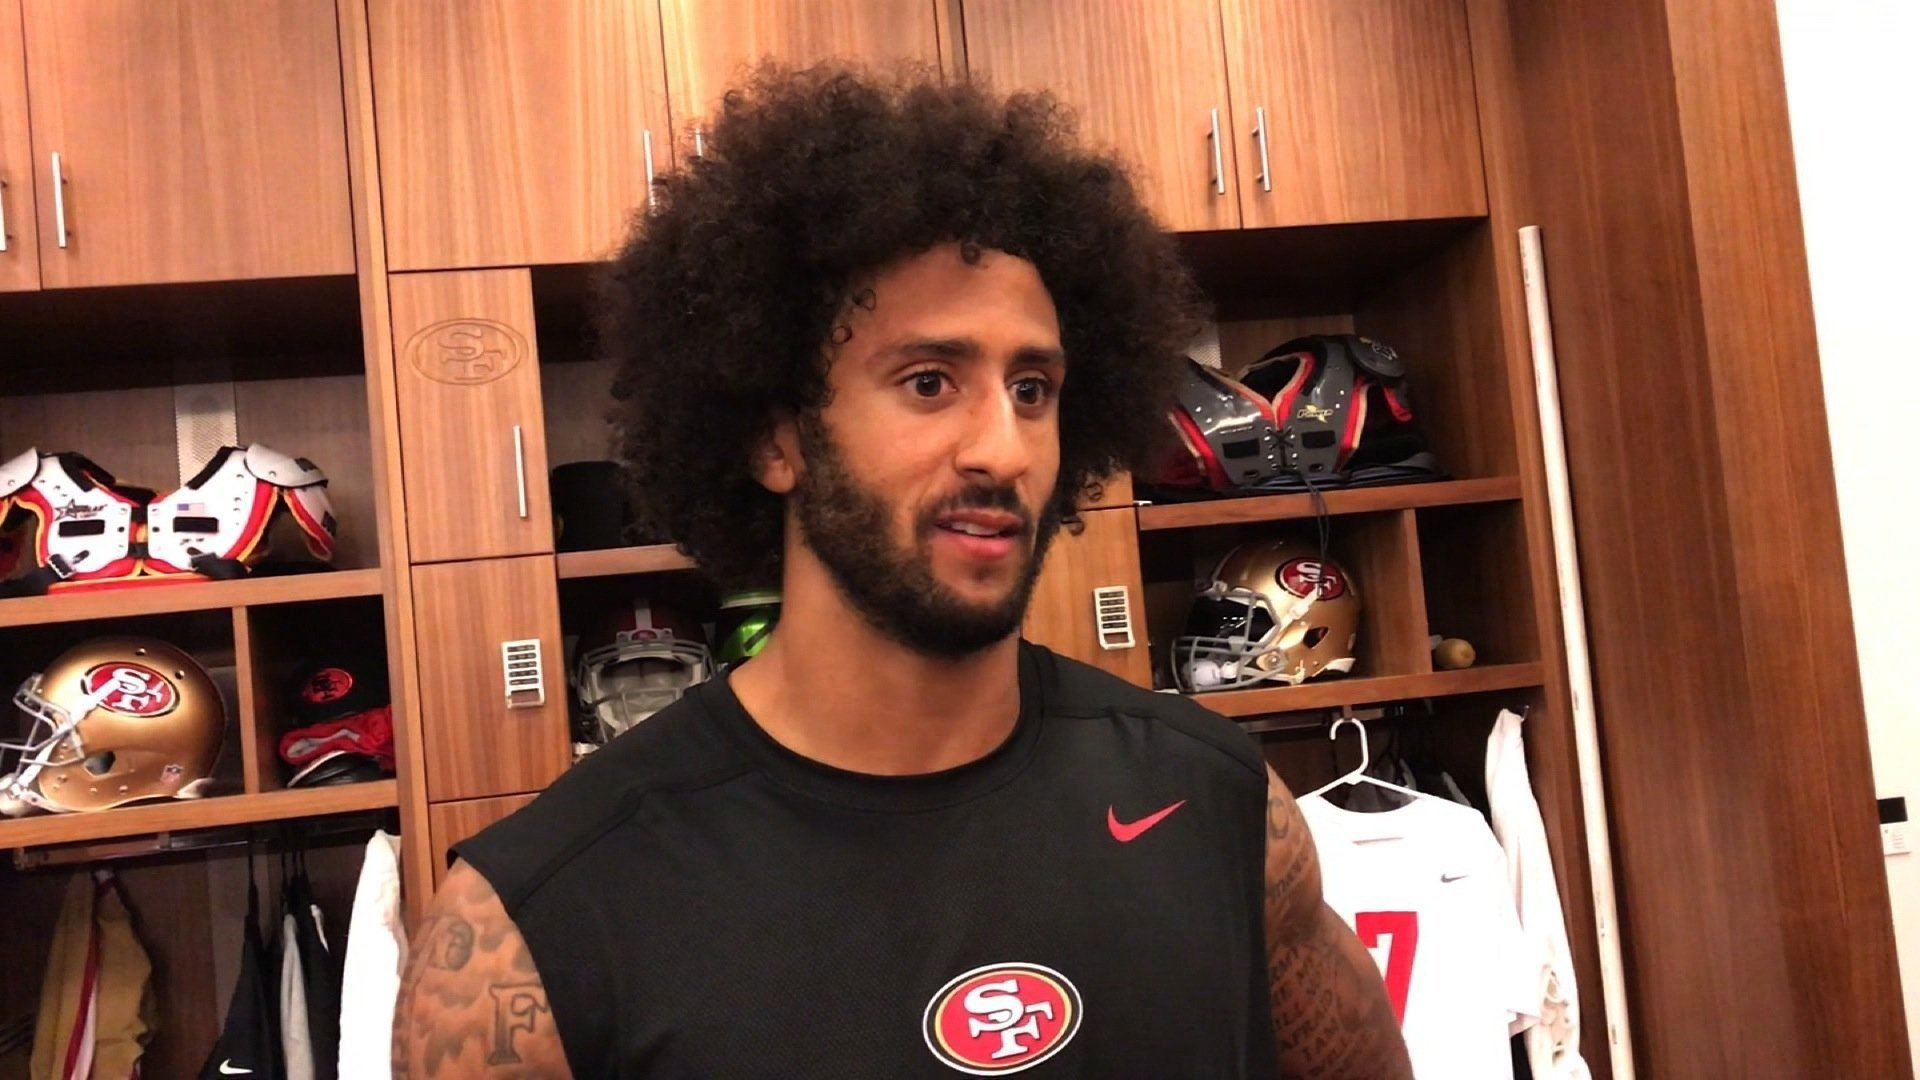 Colin Kaepernick has received the 2017 Sports Illustrated Muhammad Ali Legacy Award. (File Photo)